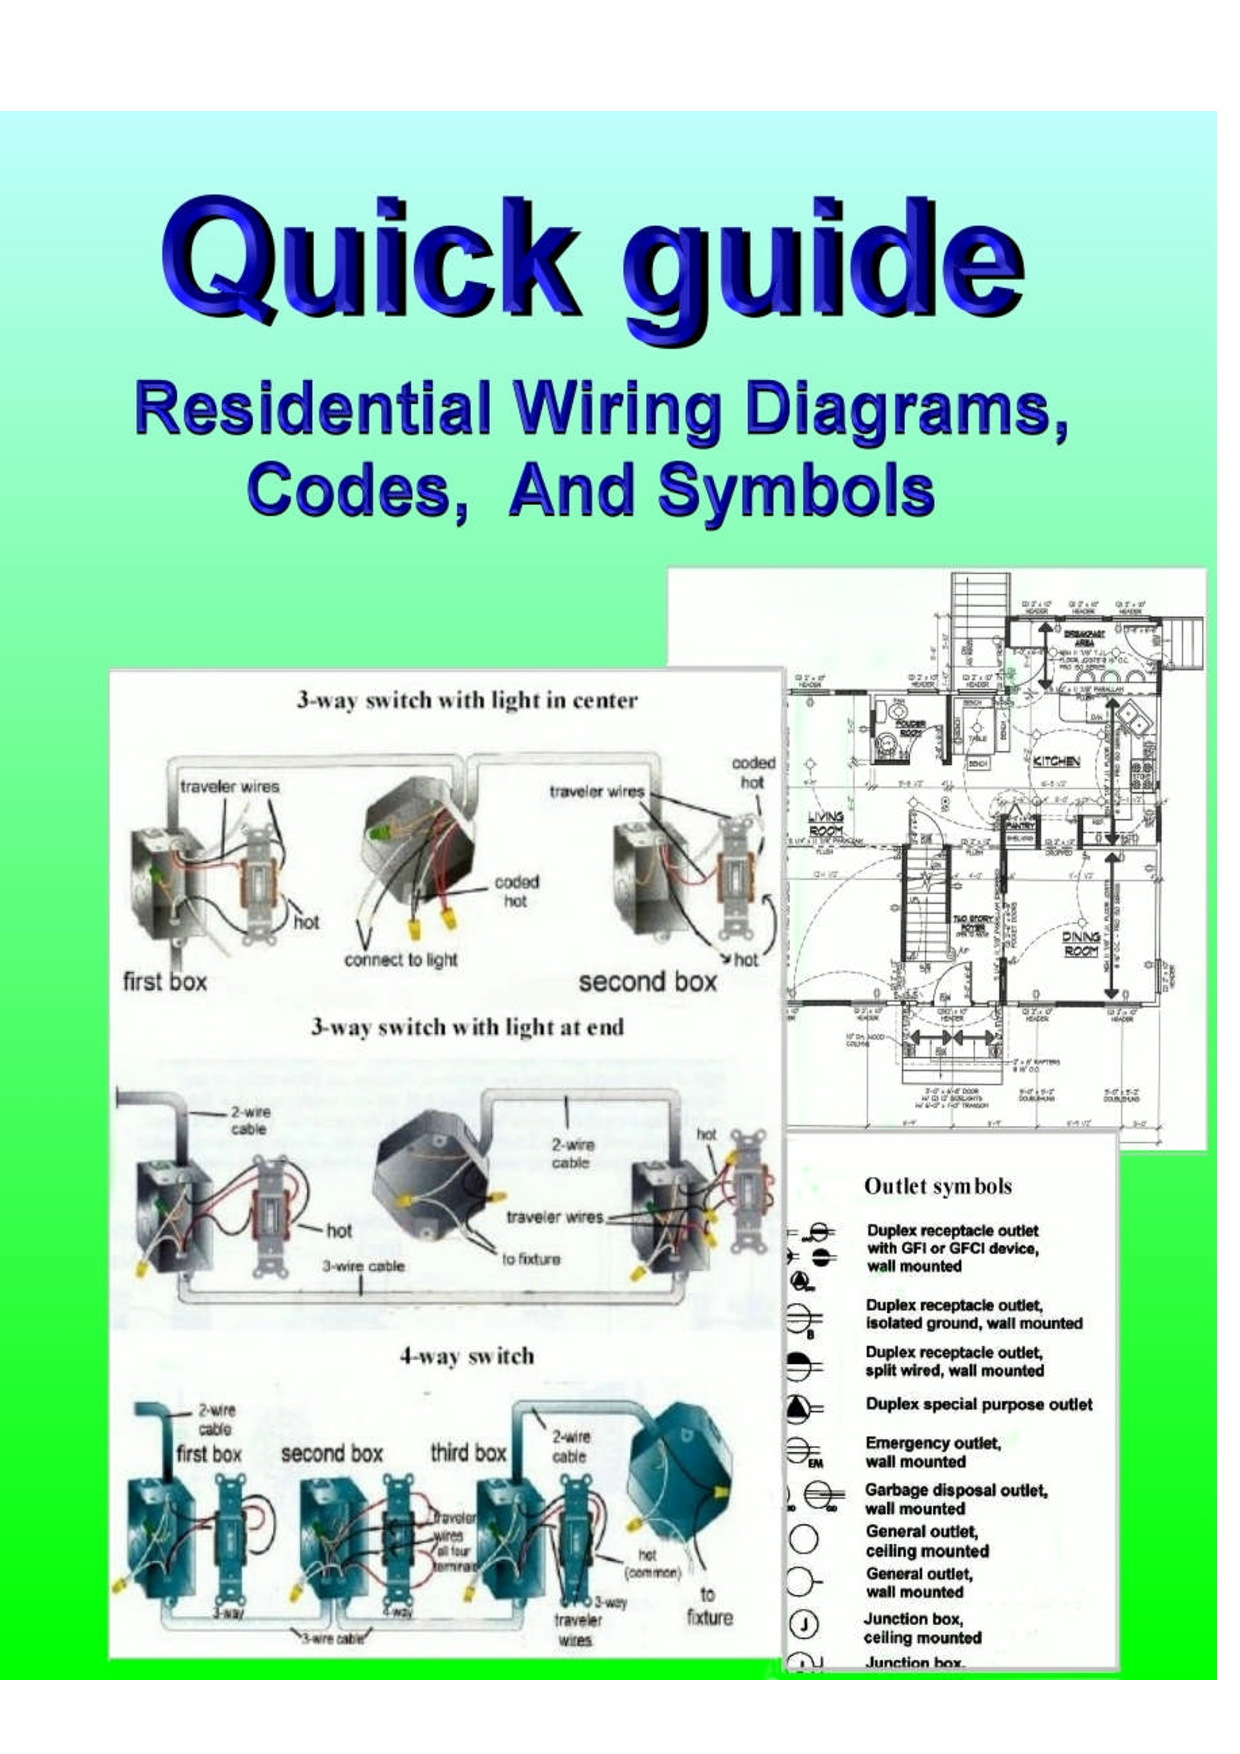 Home Electrical Wiring Diagrams.pdf Download legal documents 39 pages with  many diagrams and illustrations. A step by step home wiring guide with  diagrams, ...